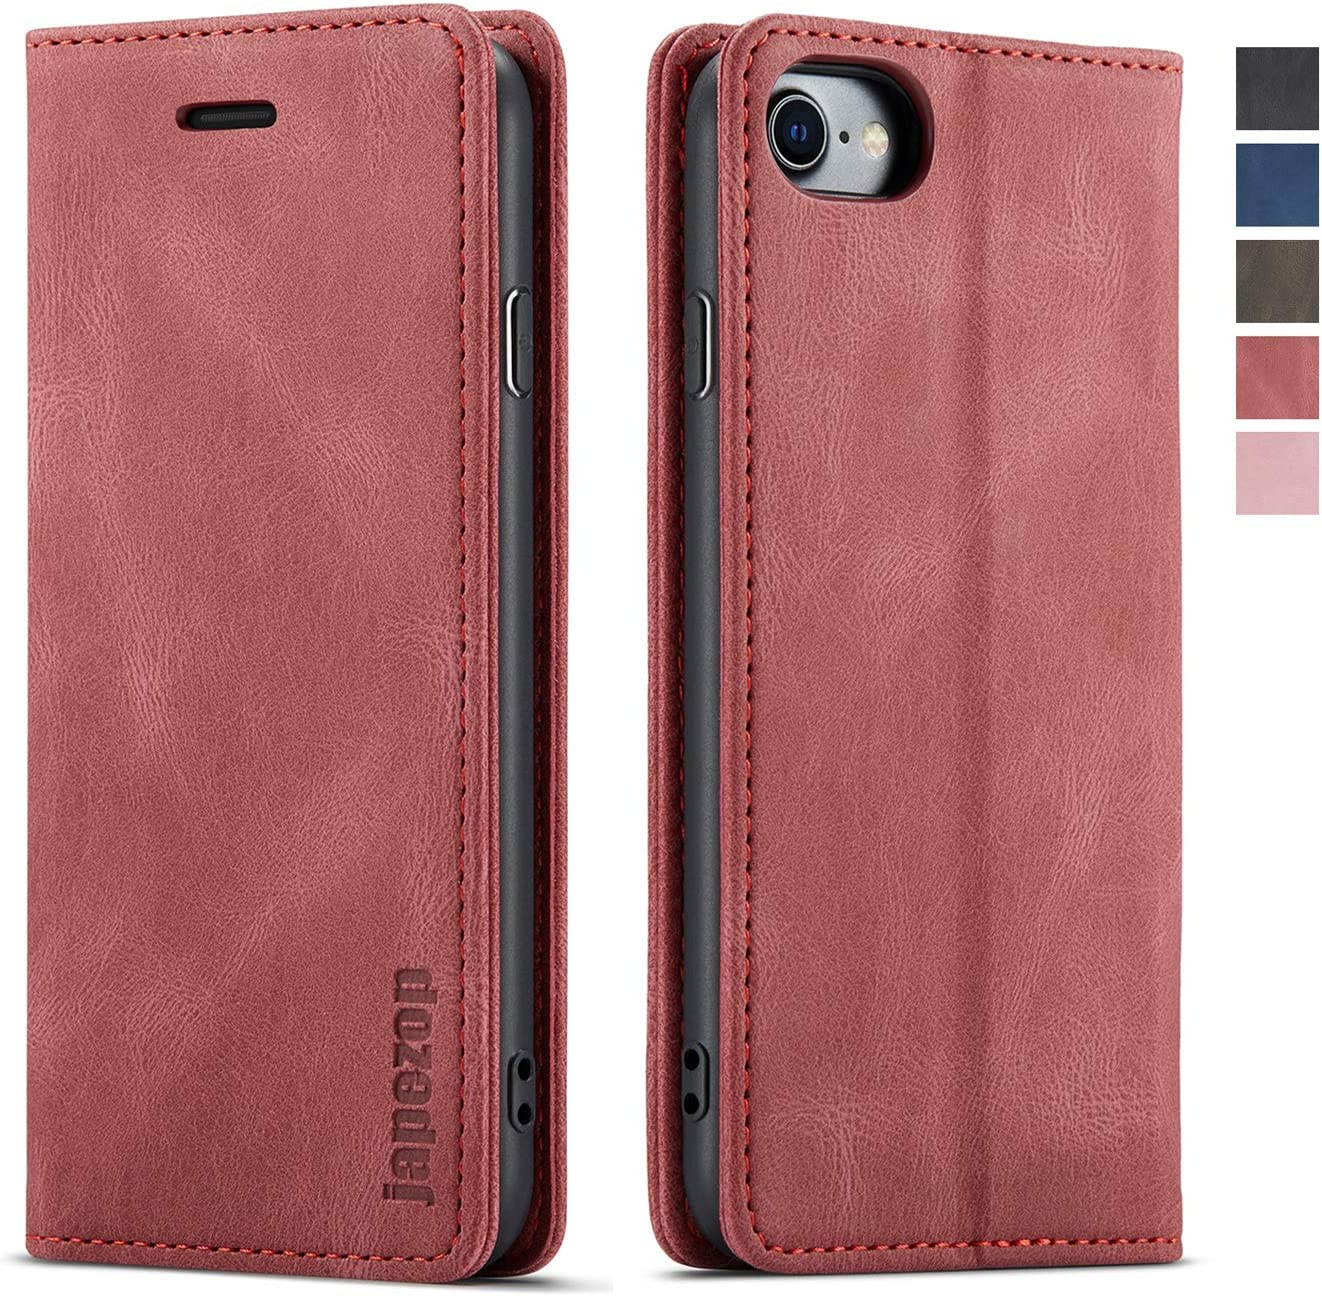 Case for iPhone 8/iPhone 7/iPhone SE2020 4.7